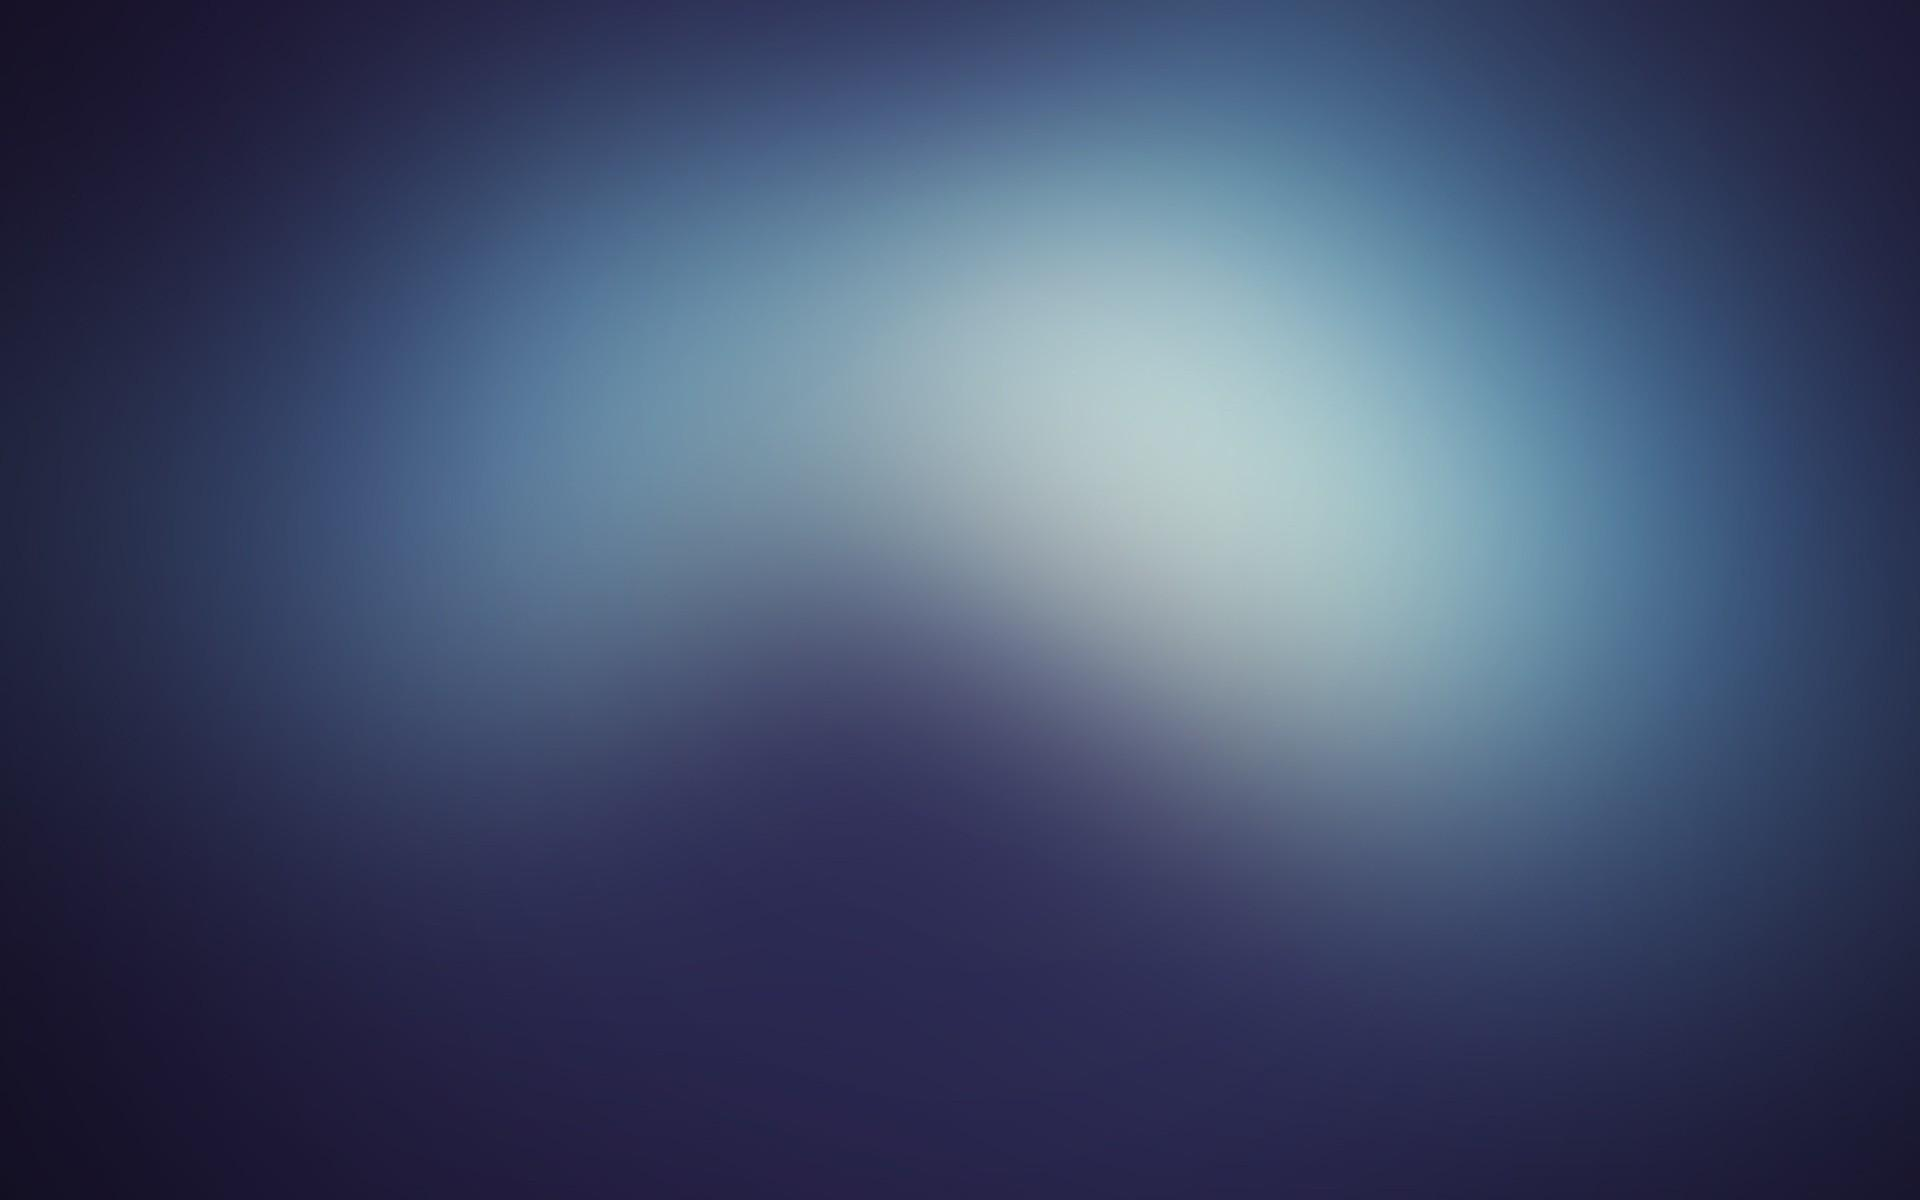 Abstract minimalistic neutral wallpaper | (131015)